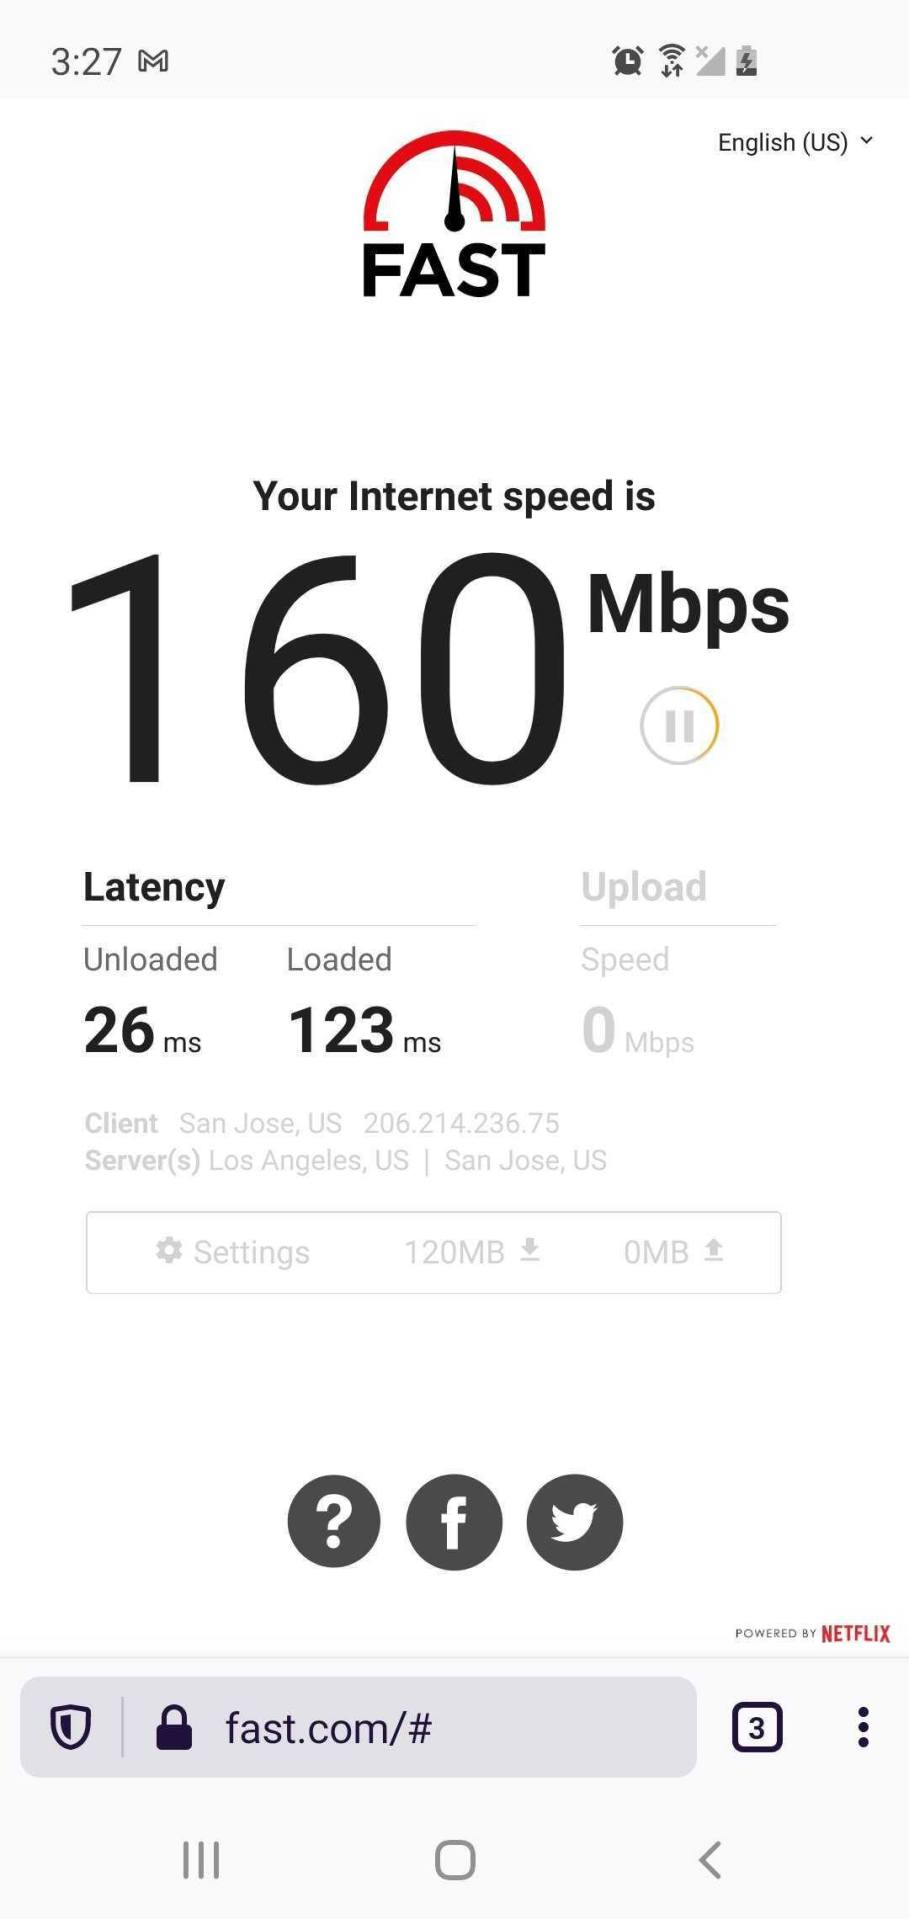 speed test showing 160 Mbps